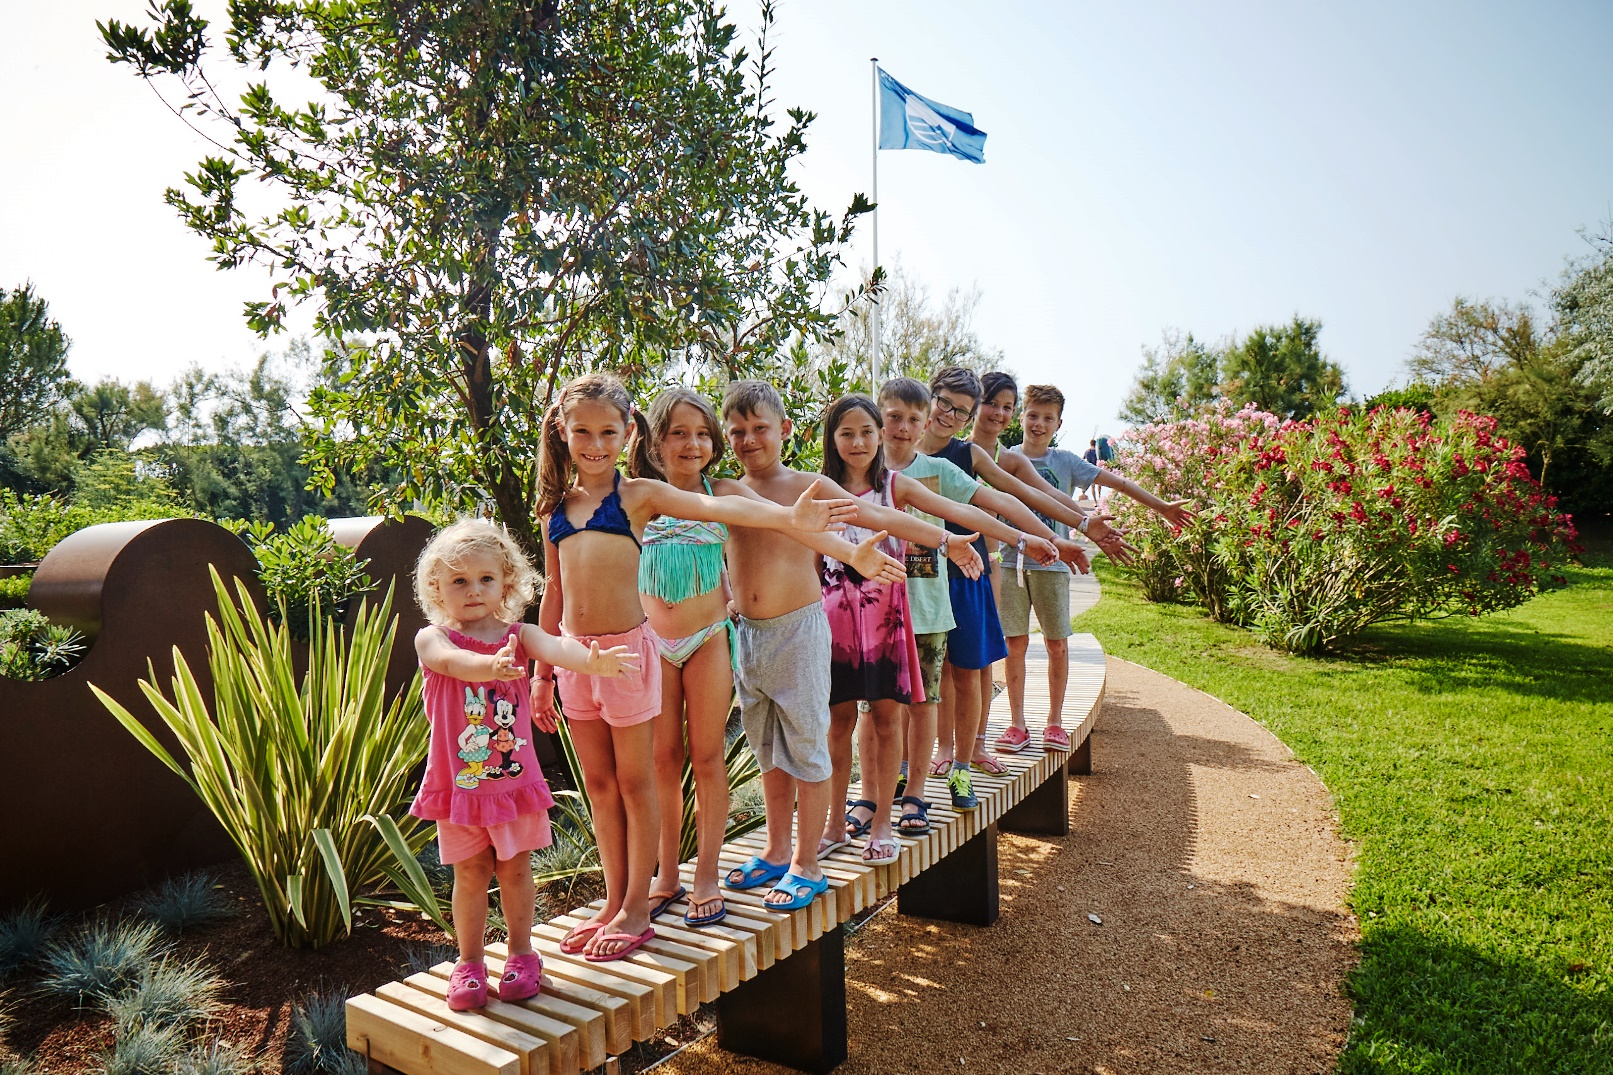 4 Kids have fun on holiday at Dei Fiori Camping - Venice Jesolo